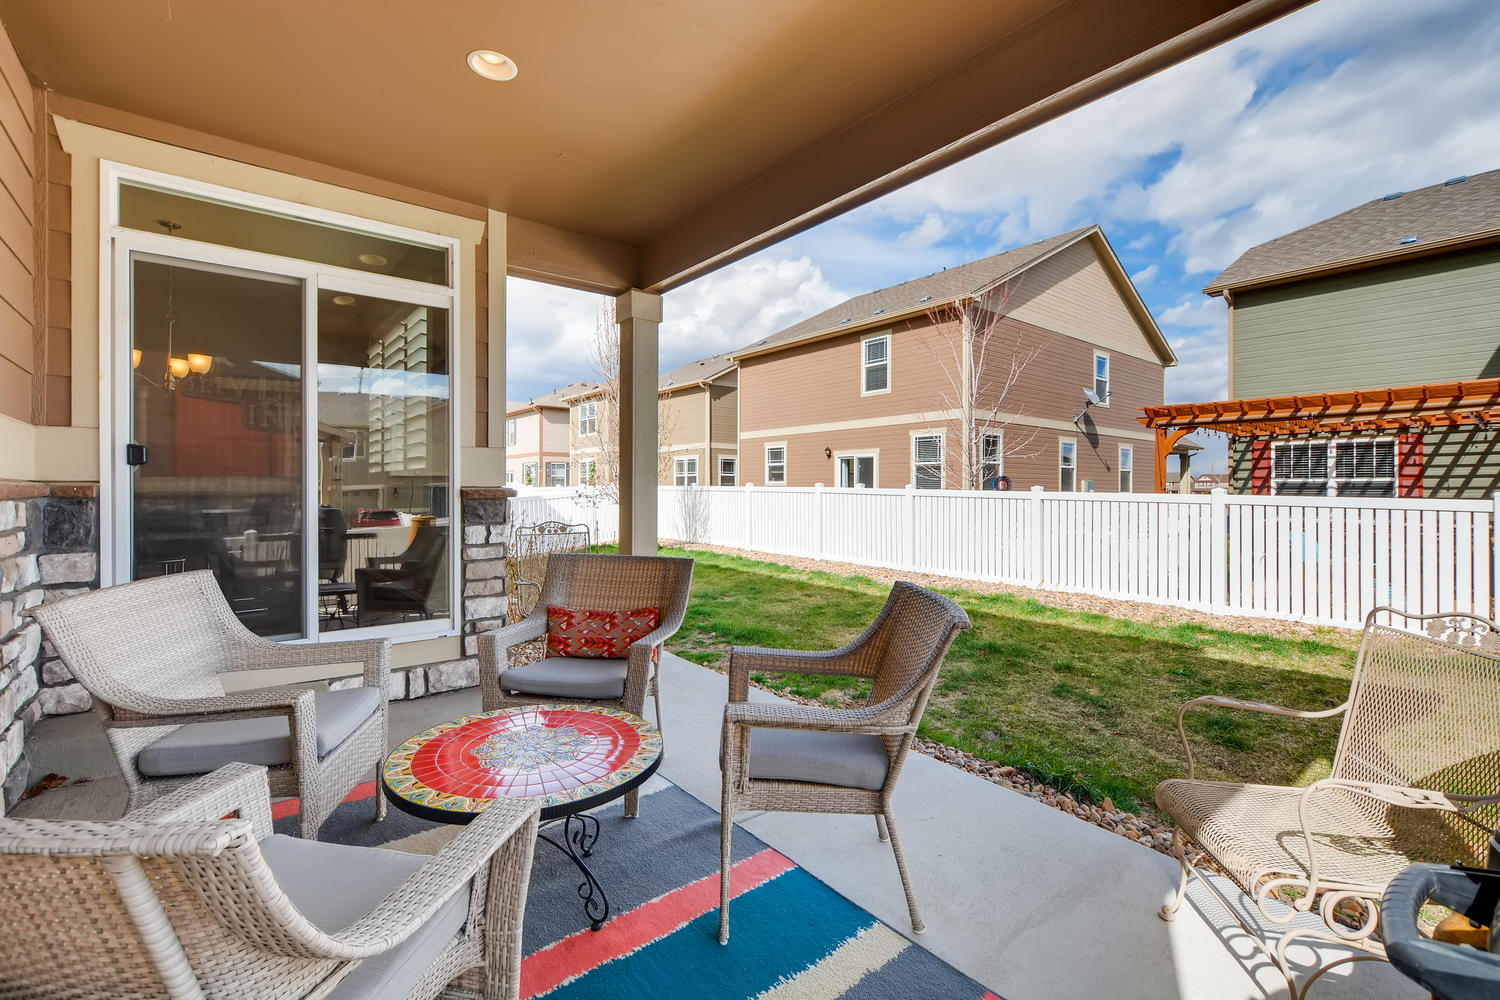 REAL ESTATE LISTING: 2182 Steppe Dr Longmont Covered Back Porch